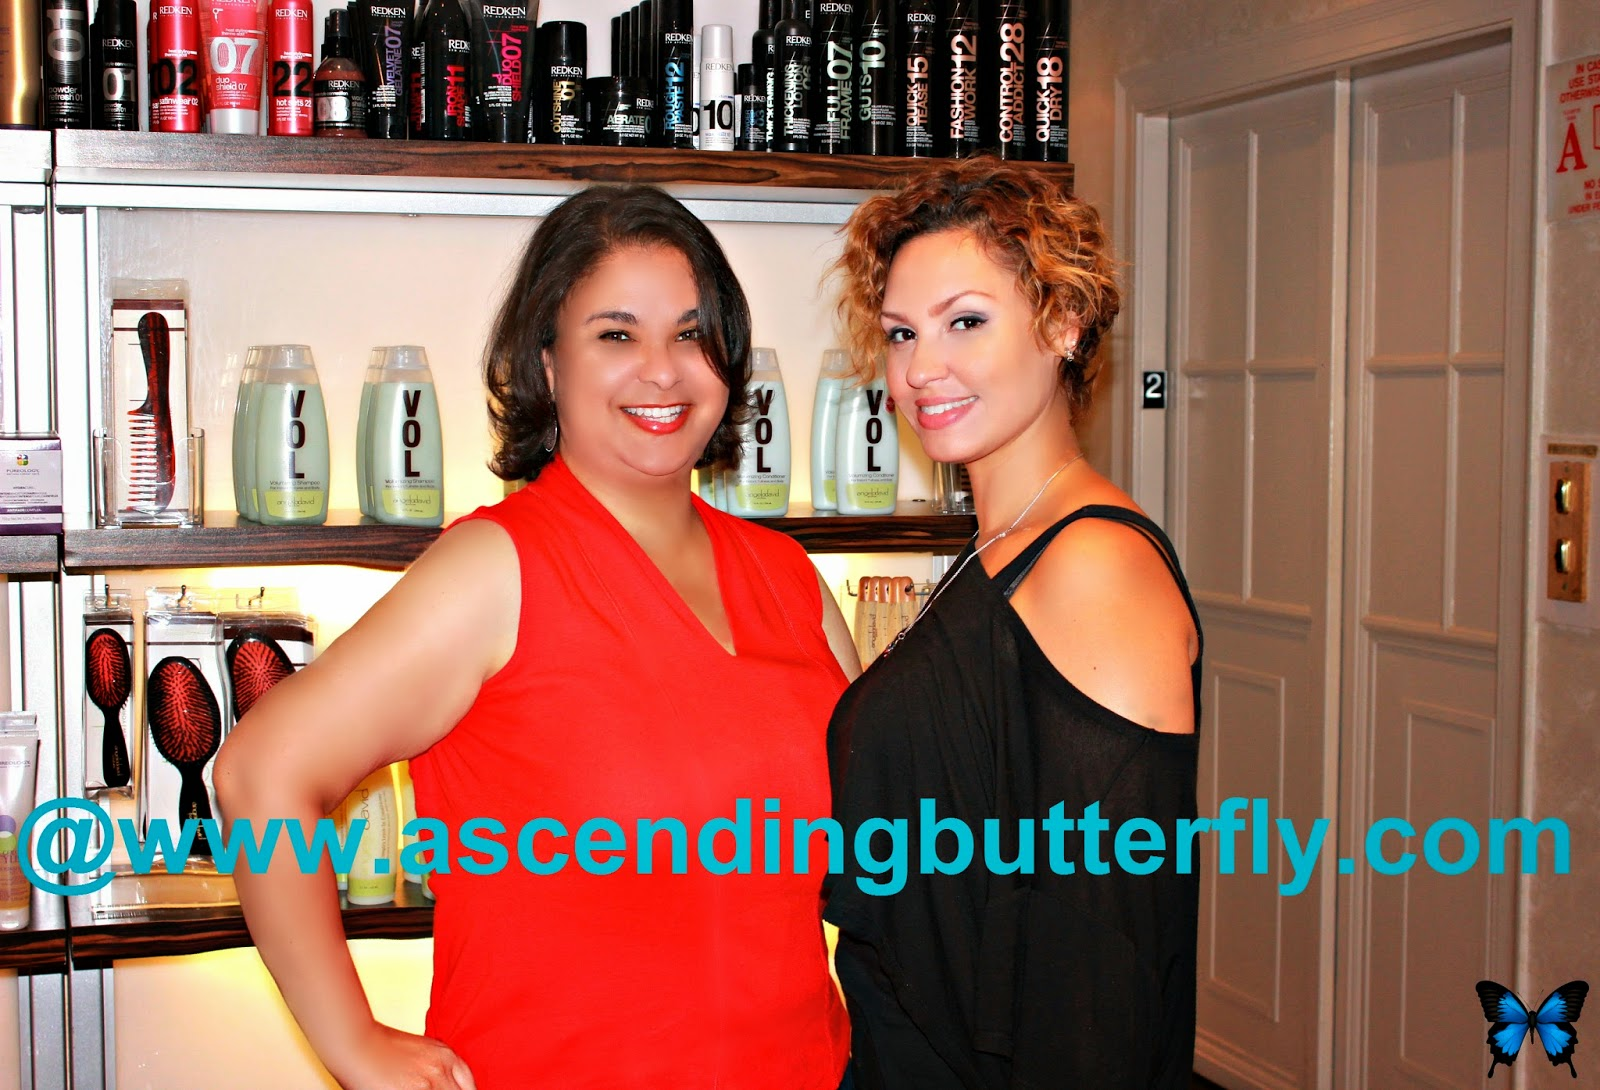 @angelodavidhair salon, Hair Stylist Ivy of the Angelo David Salon in New York City styles Ascending Butterfly Editor Tracy Iglesias, hair, haircut